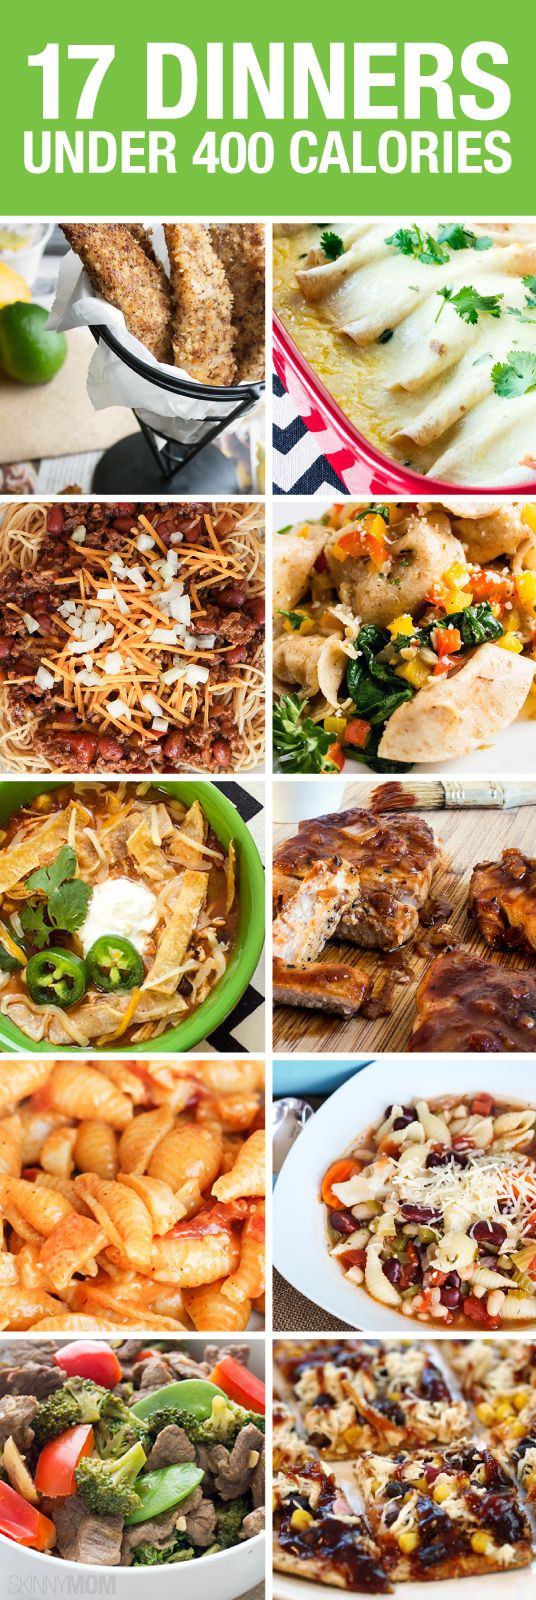 400 Calorie Dinners  Weve got 17 recipes for you that are under 400 calories